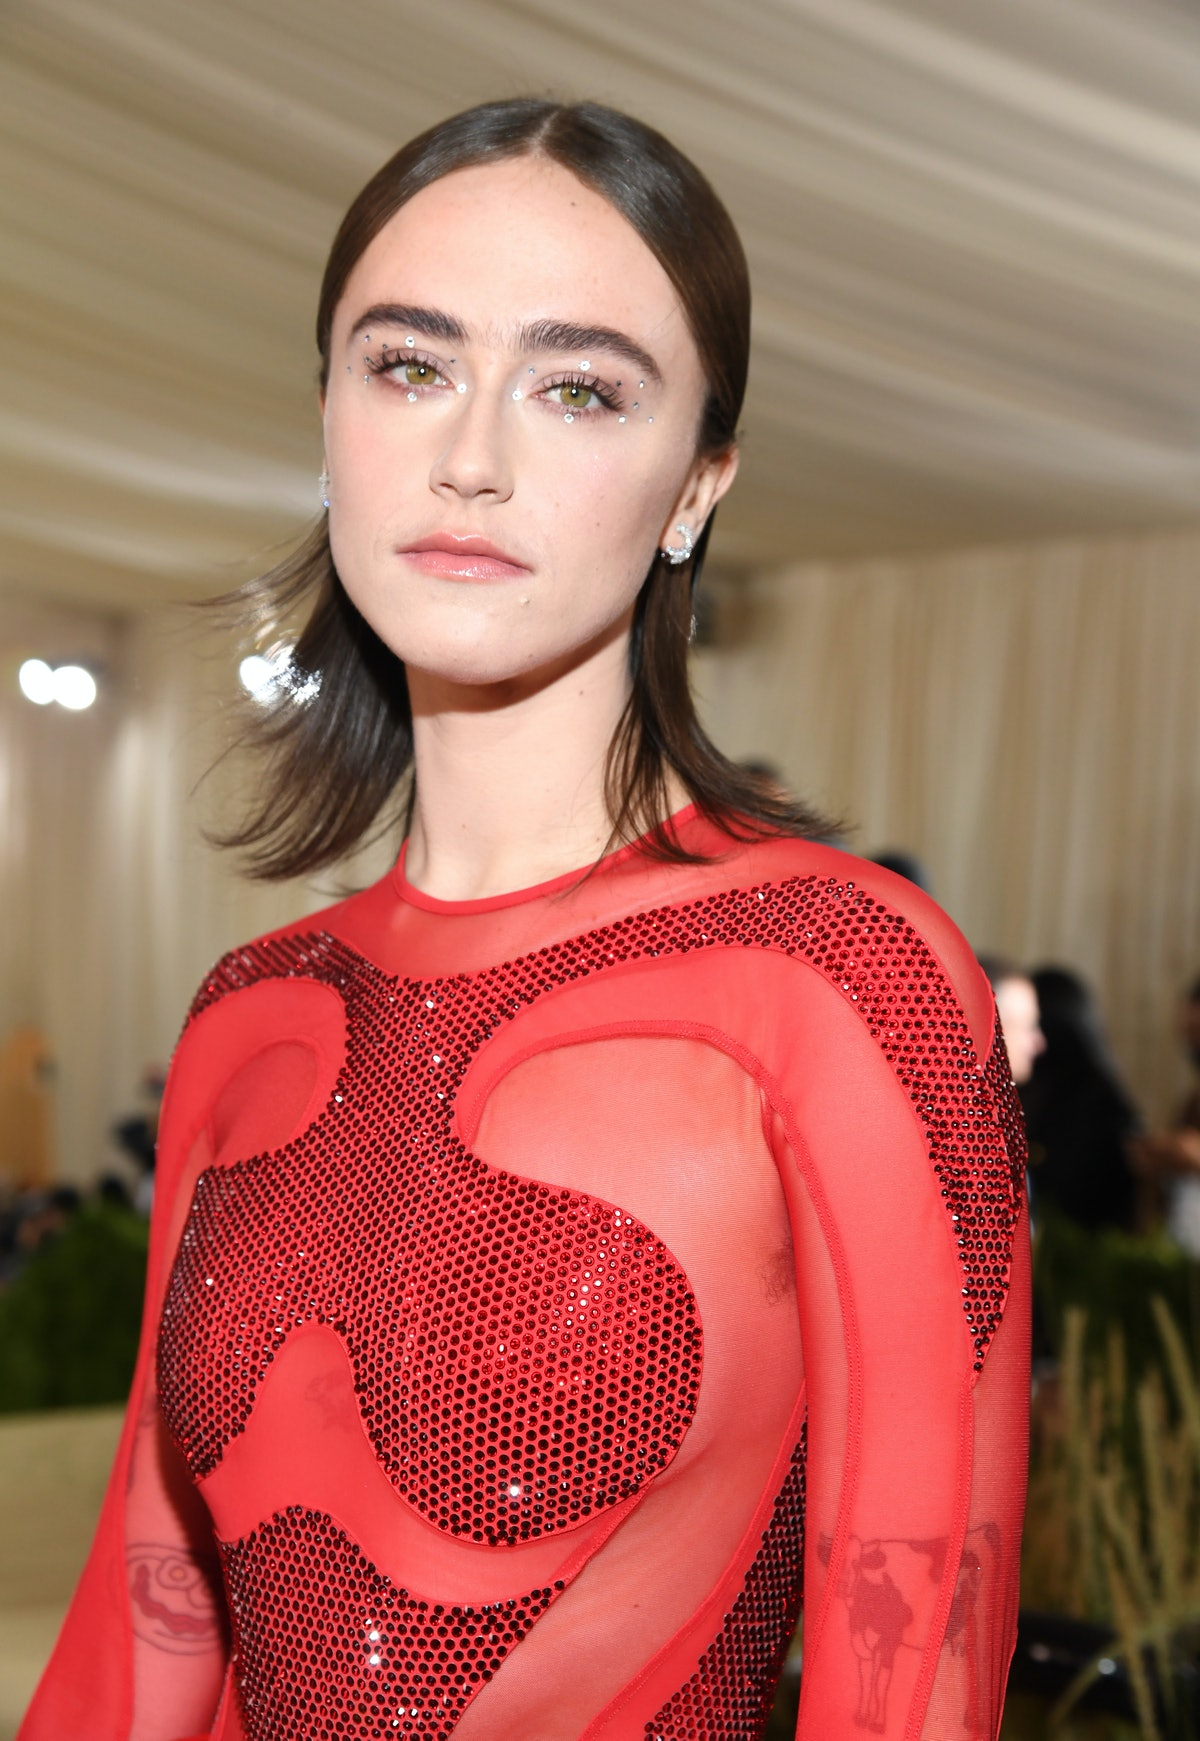 NEW YORK, NEW YORK - SEPTEMBER 13: Ella Emhoff attends The 2021 Met Gala Celebrating In America: A L...